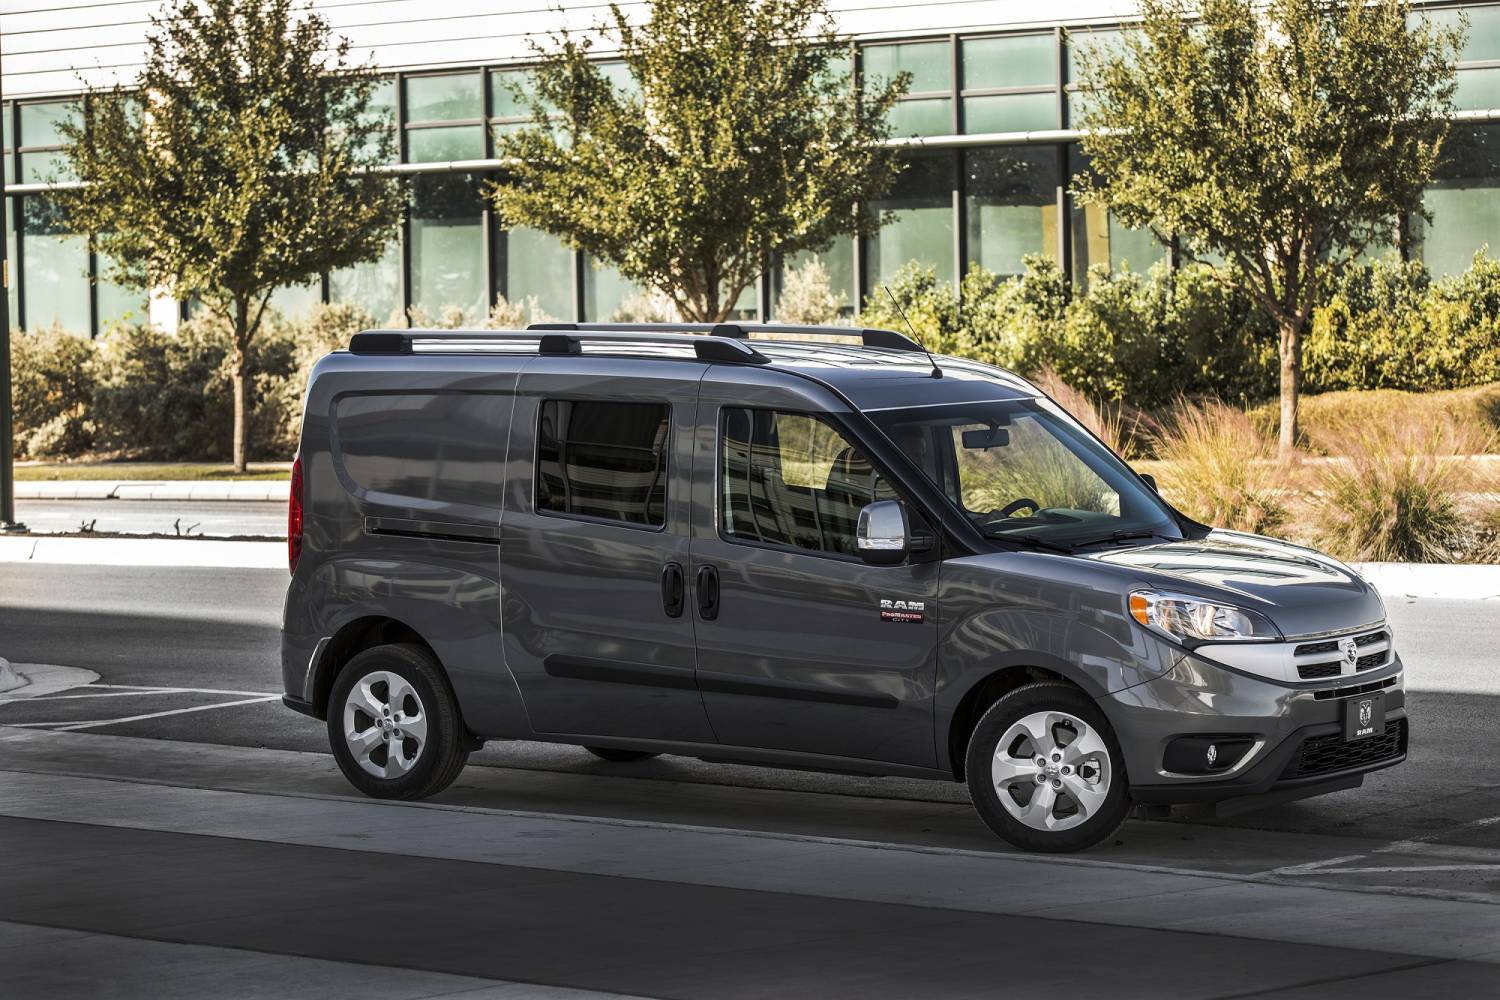 city long dodge doors island hood under ram the promaster for rear near open s ny york new htm side sale